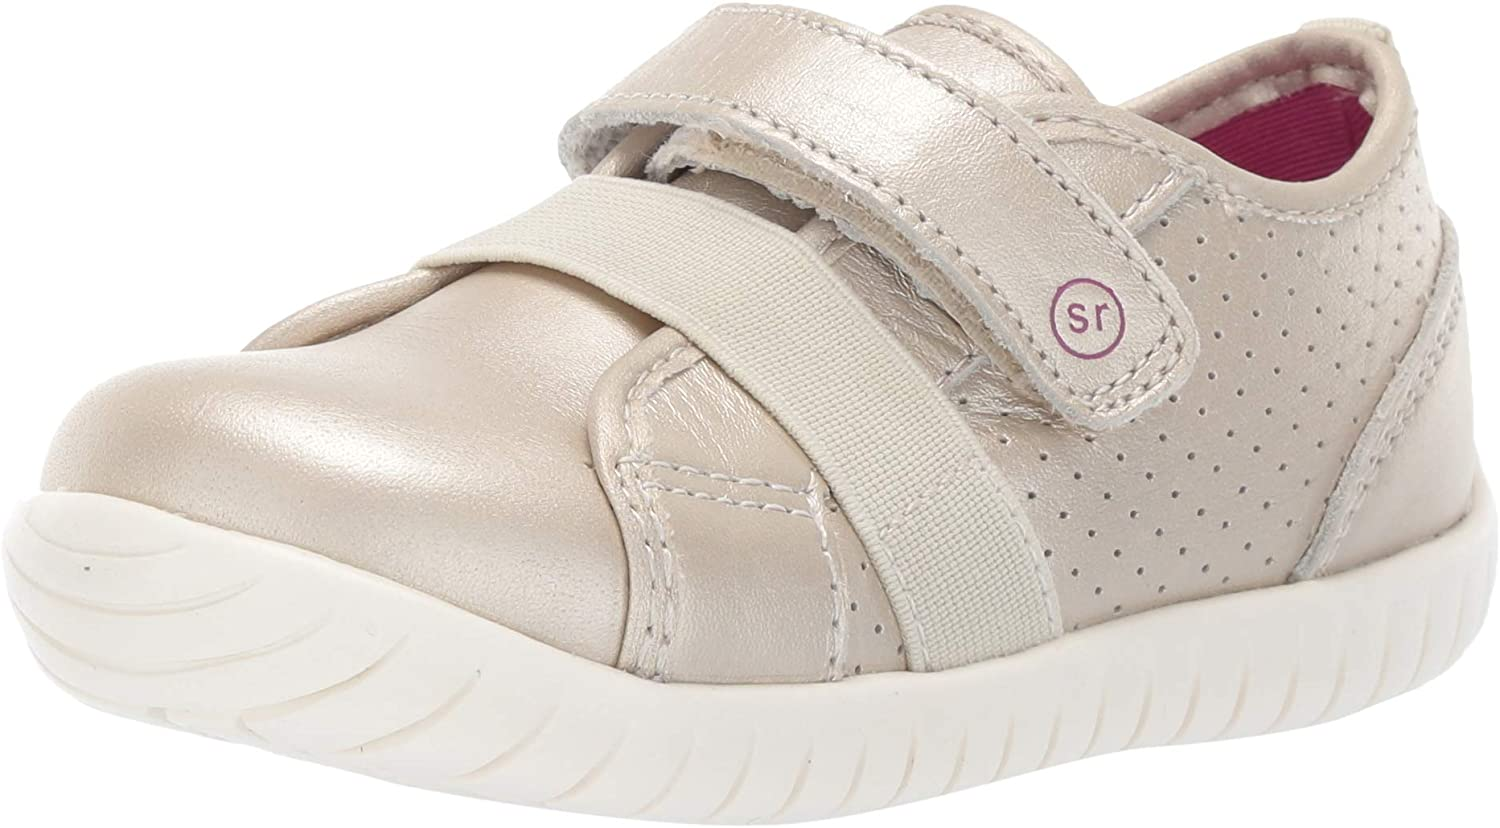 Stride Rite Unisex-Child Sr Tech Riley Sales of SALE items from new works Sneaker High material